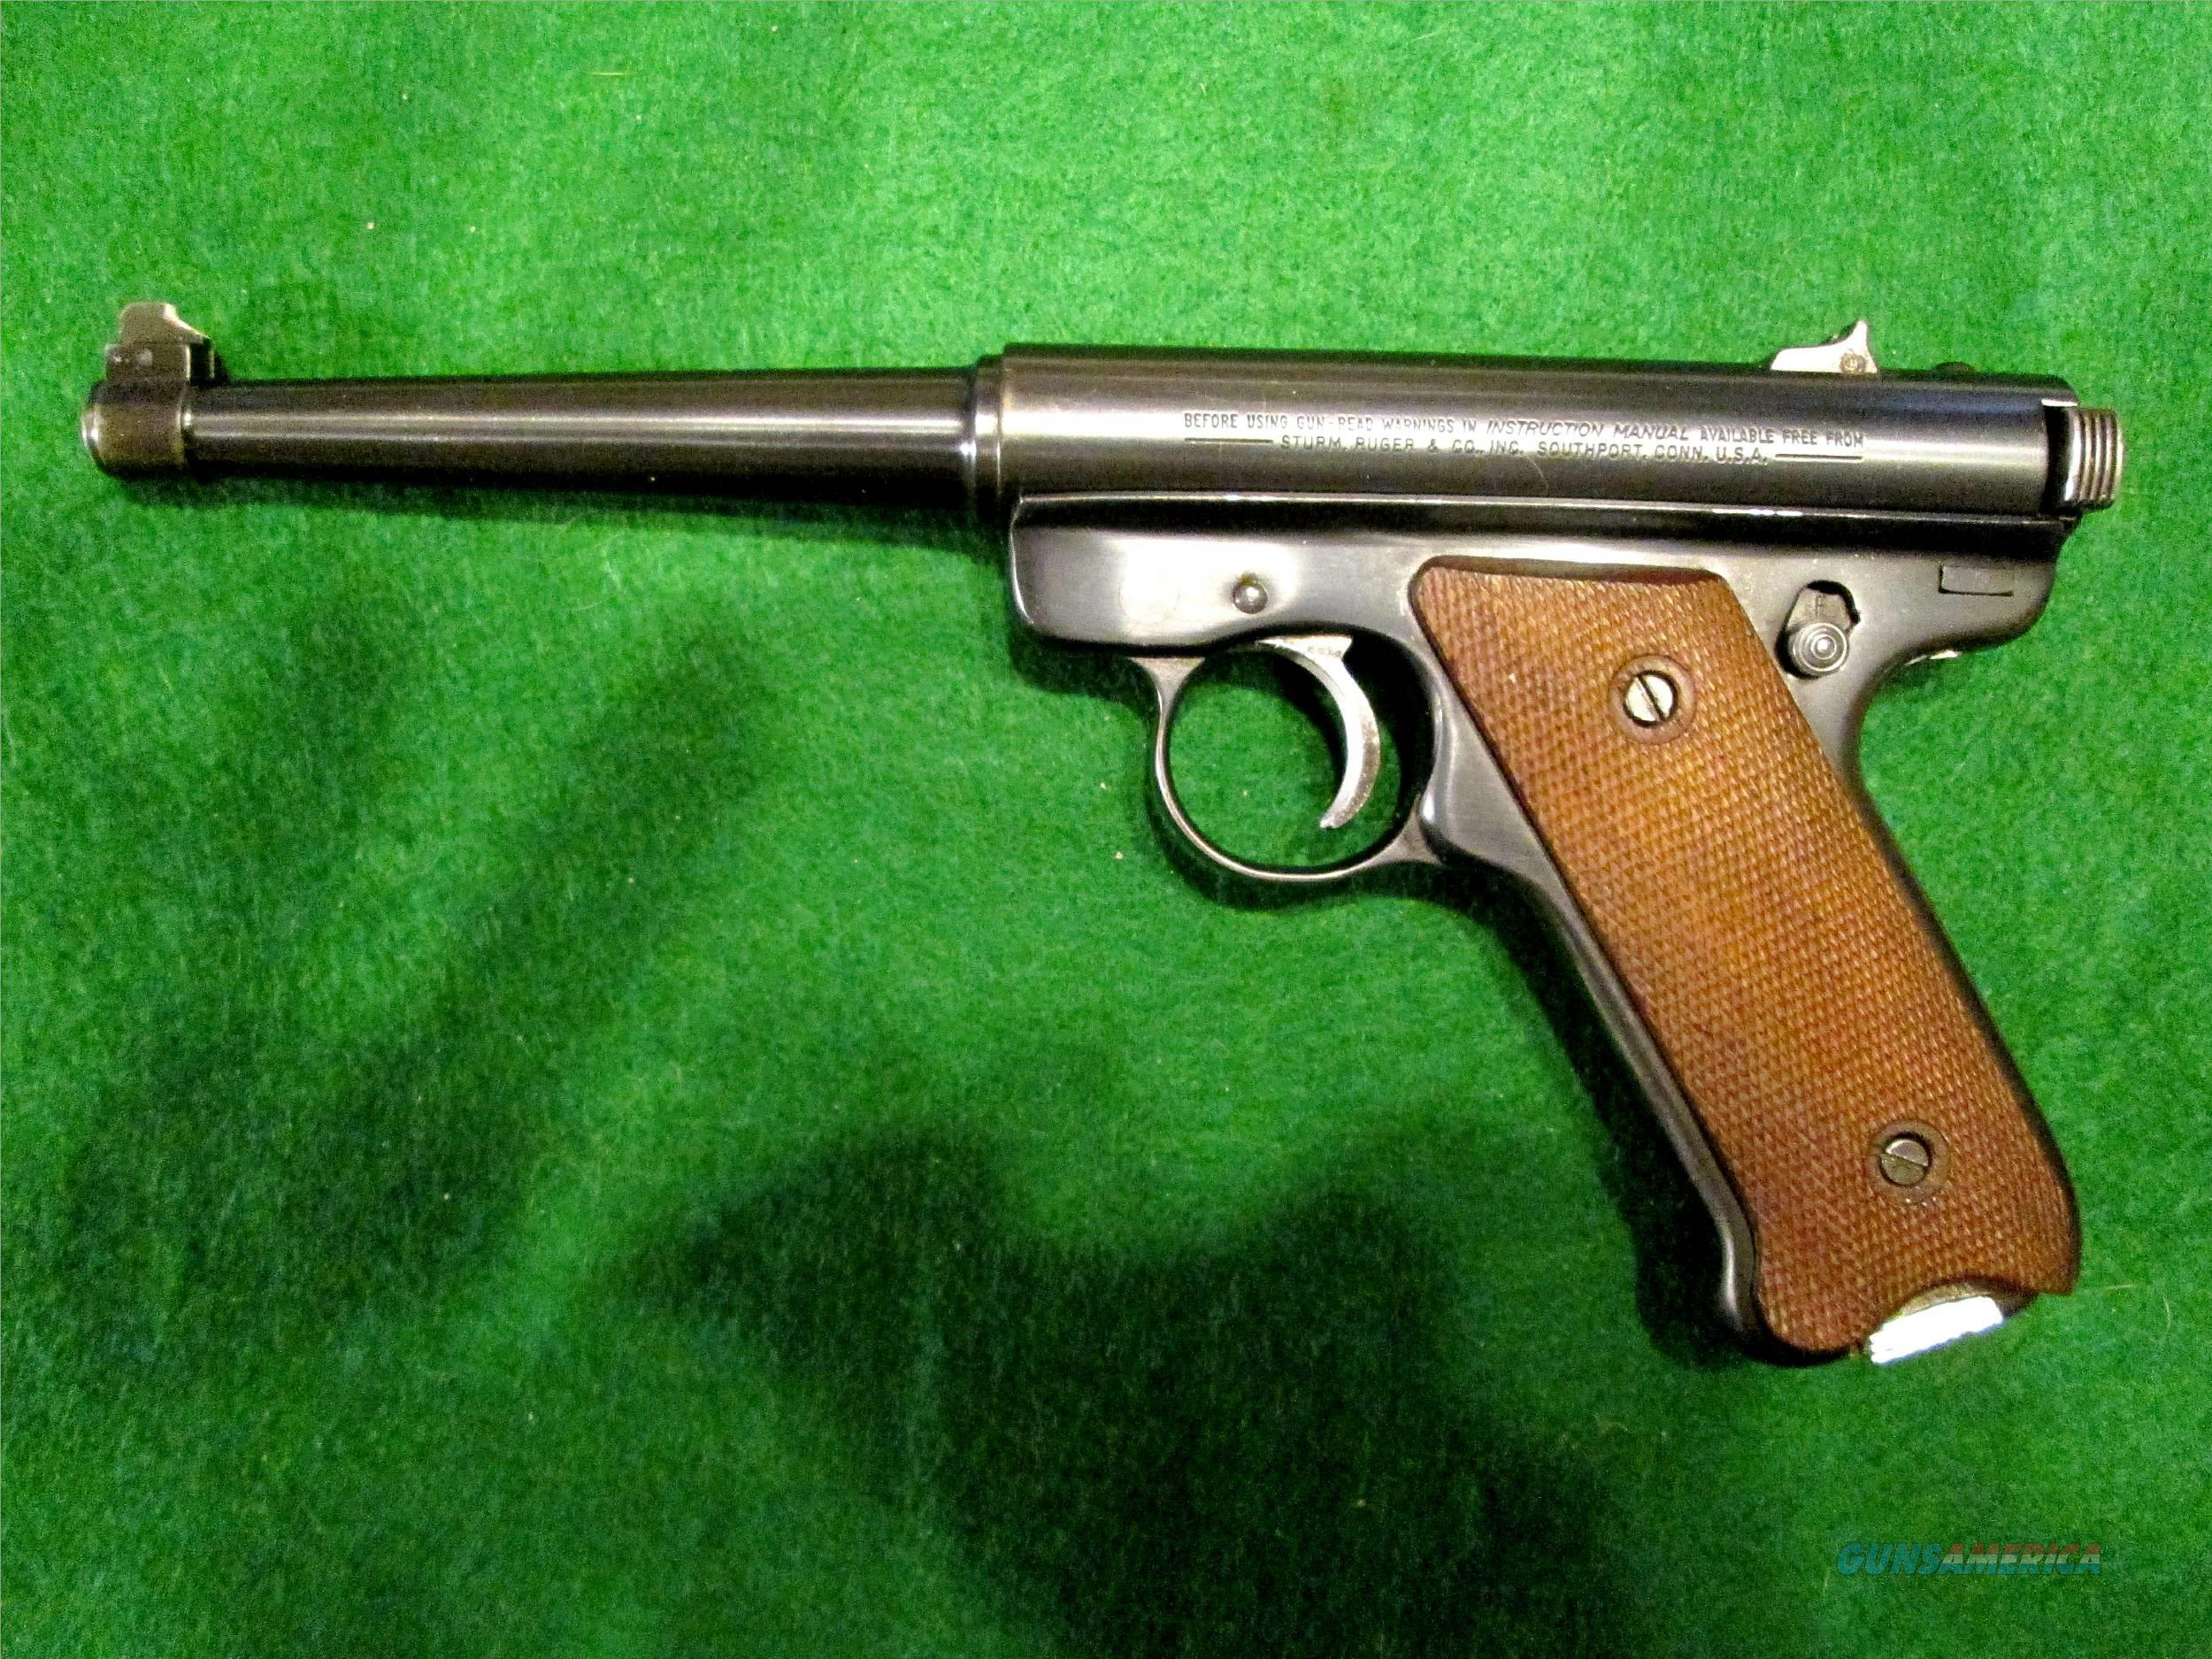 VINTAGE RUGER MK1 – with Case, 2 Magazines – made 1978 - 6 inch Barrel  Guns > Pistols > Ruger Semi-Auto Pistols > Mark I/II/III/IV Family